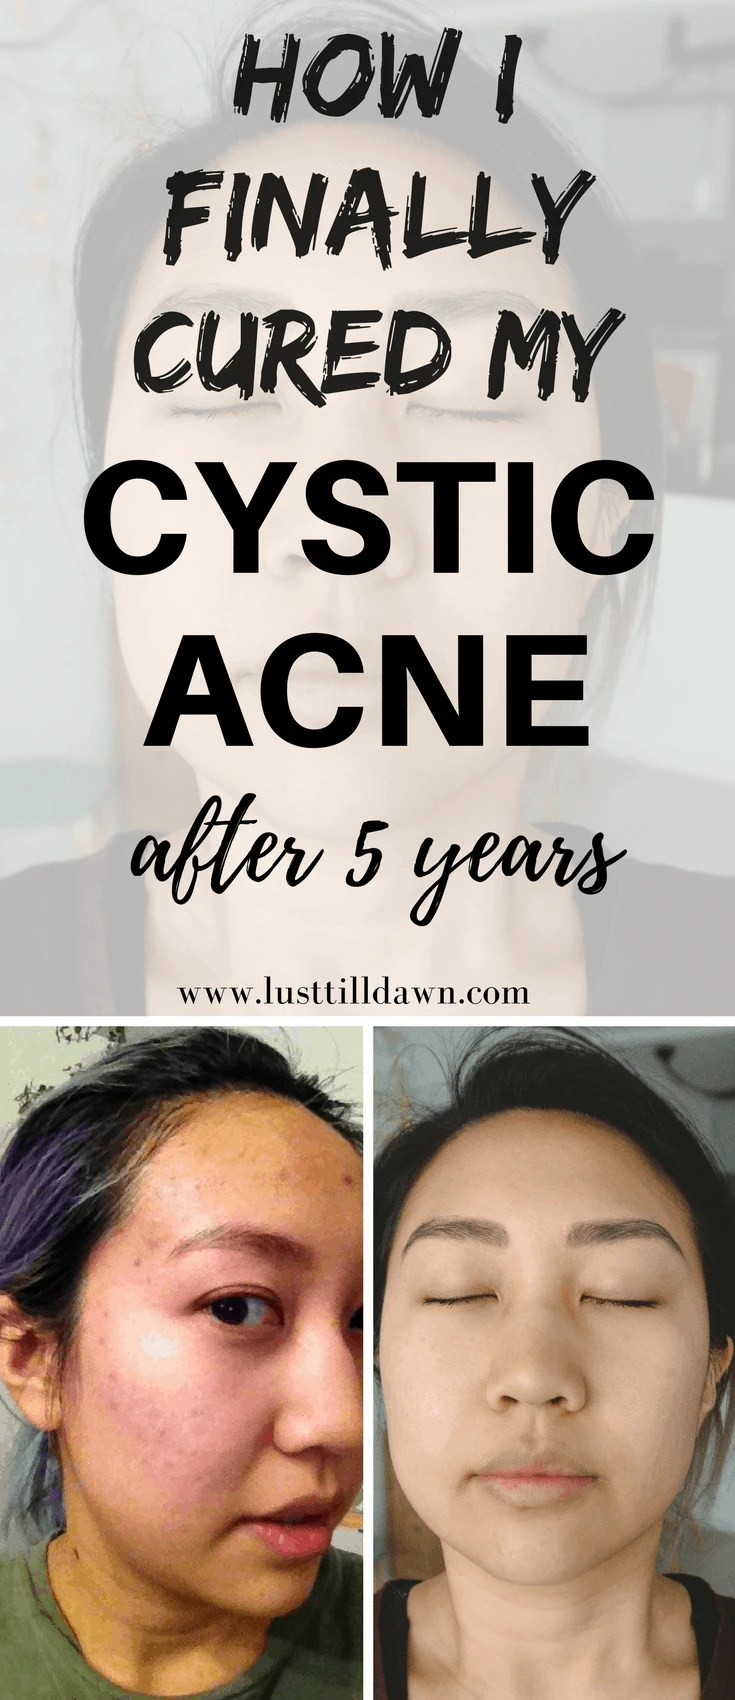 How I Cured My Cystic Acne by Discovering Food Allergies and Acid